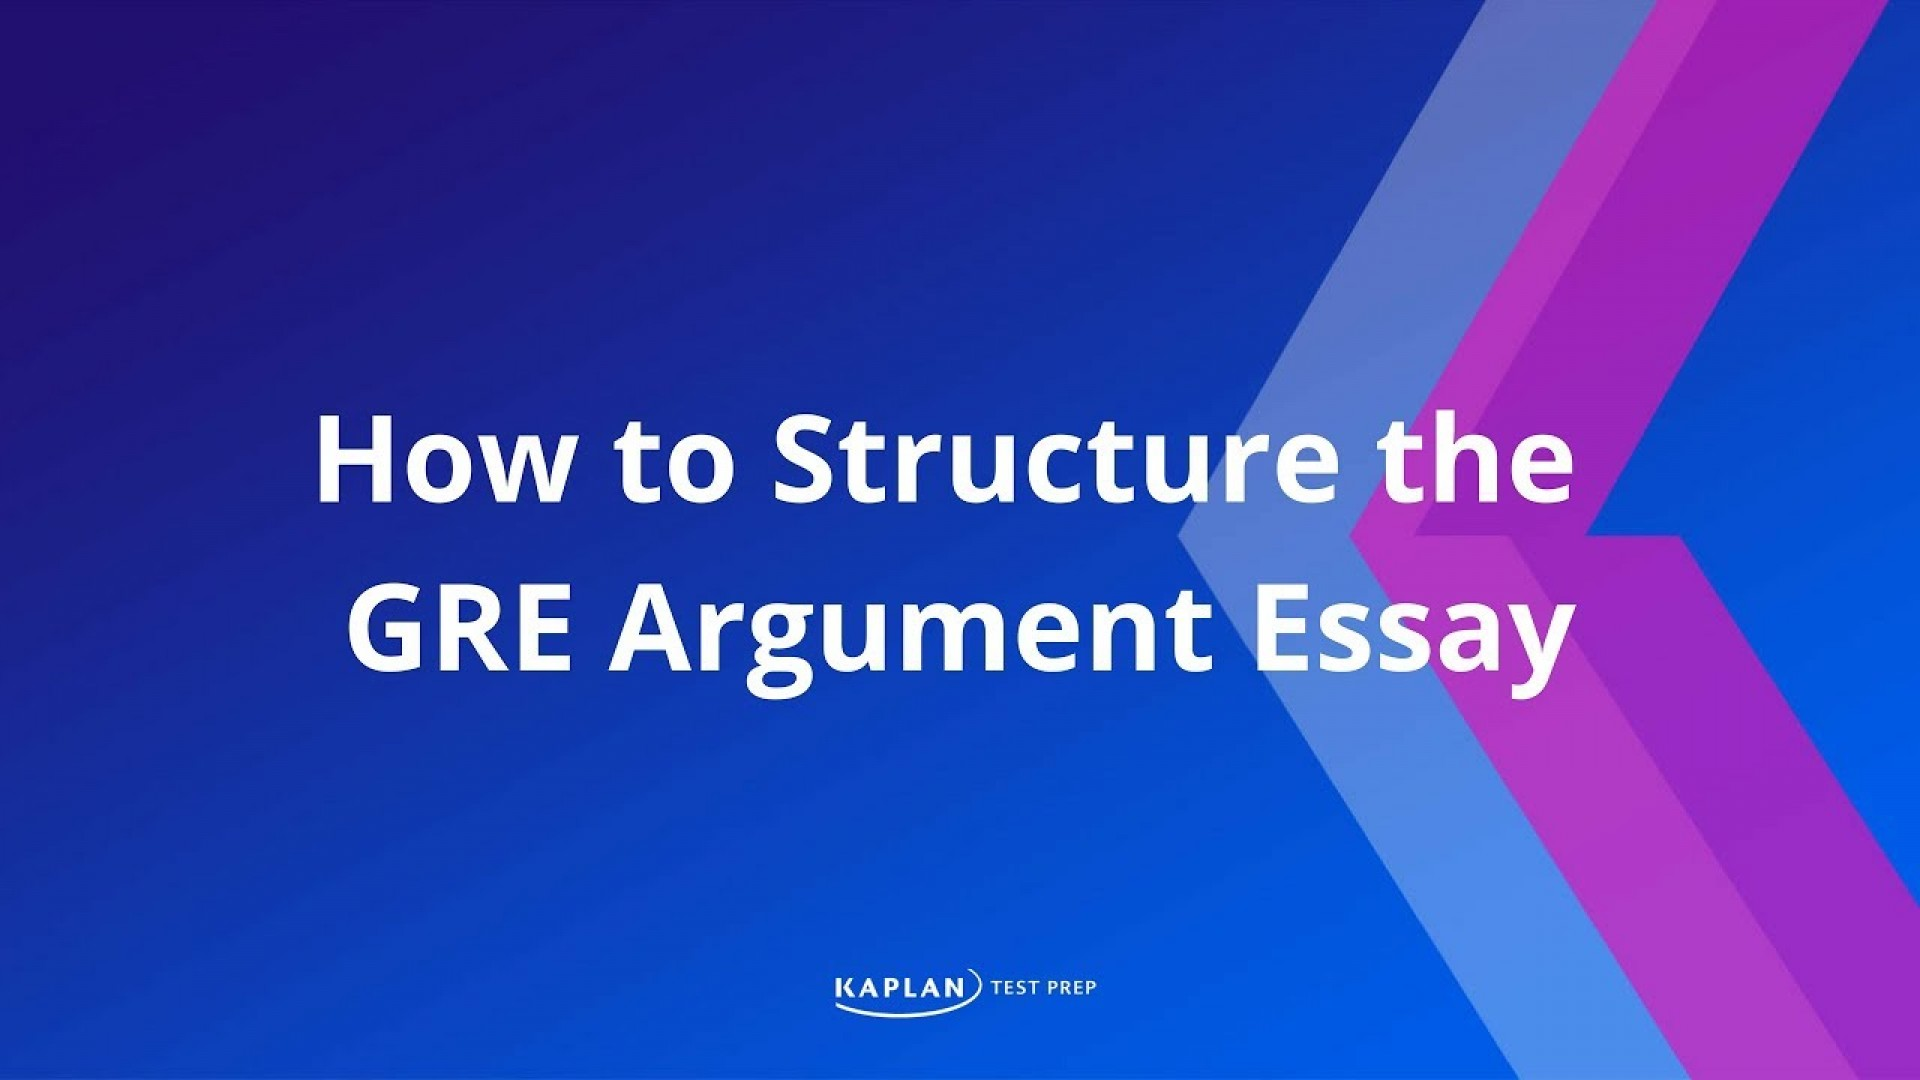 010 Gre Argument Essay Template Example Frightening 1920